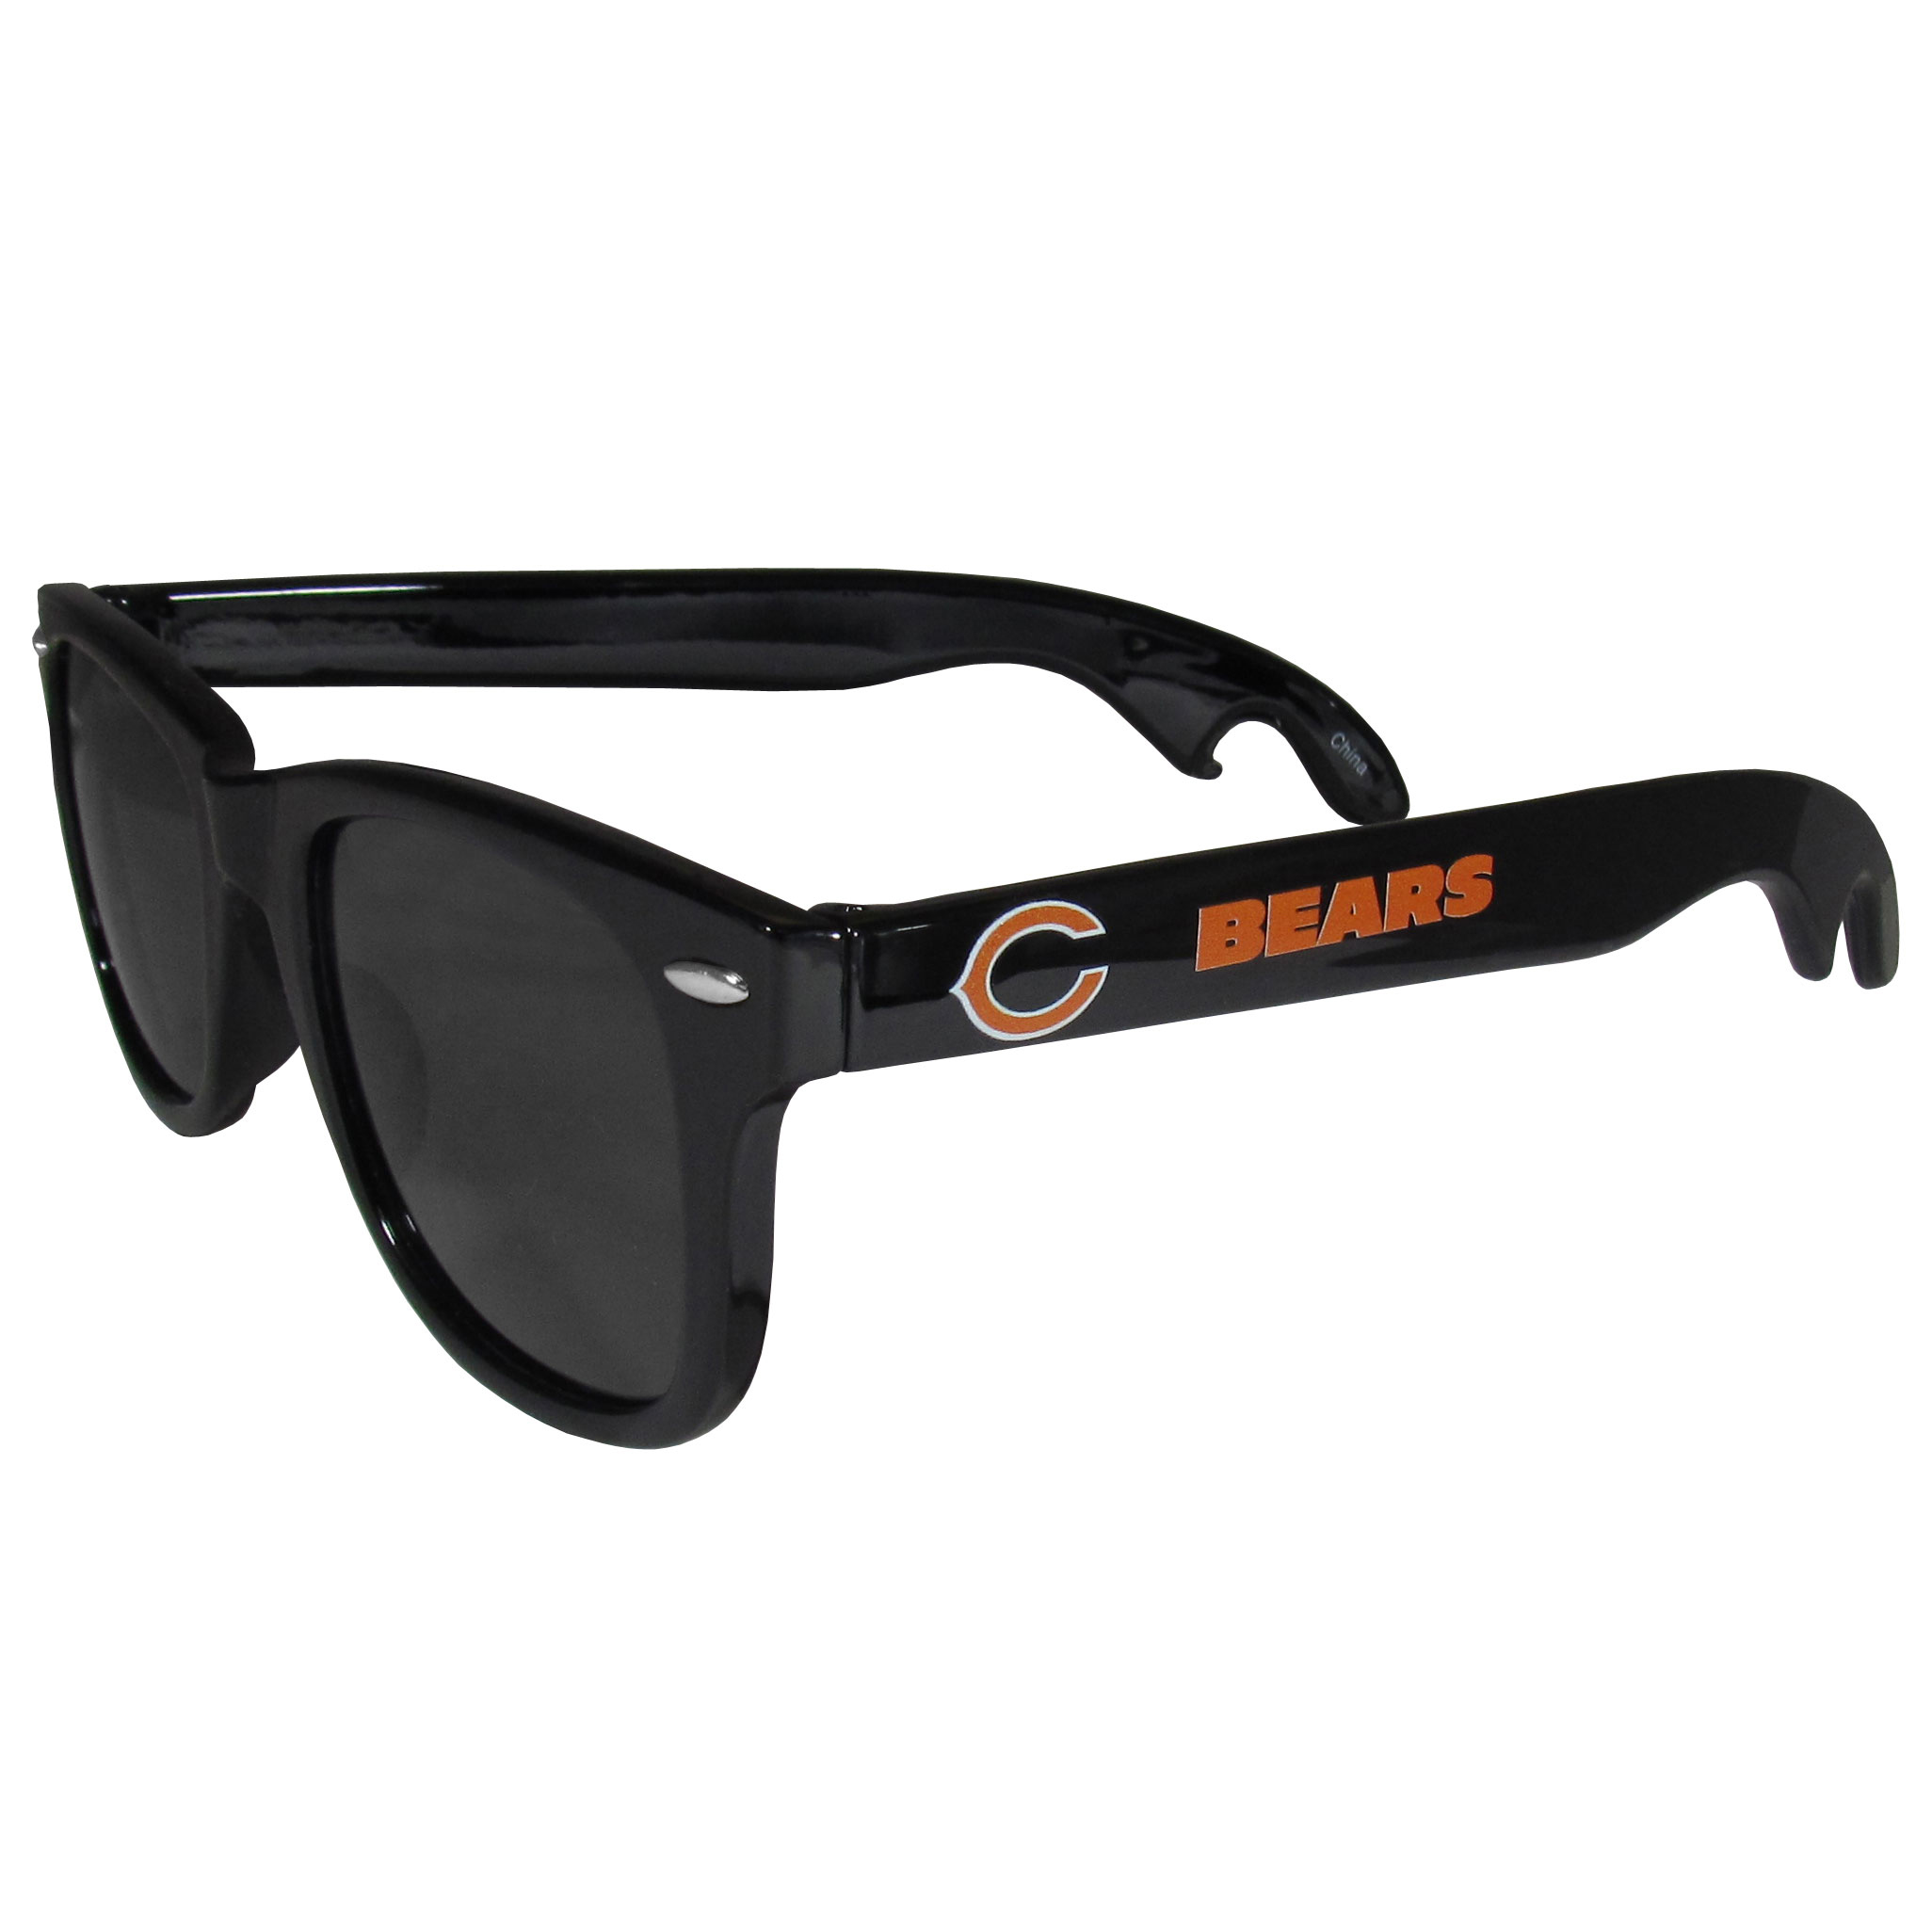 Chicago Bears Beachfarer Bottle Opener Sunglasses - Seriously, these sunglasses open bottles! Keep the party going with these amazing Chicago Bears bottle opener sunglasses. The stylish retro frames feature team designs on the arms and functional bottle openers on the end of the arms. Whether you are at the beach or having a backyard BBQ on game day, these shades will keep your eyes protected with 100% UVA/UVB protection and keep you hydrated with the handy bottle opener arms.